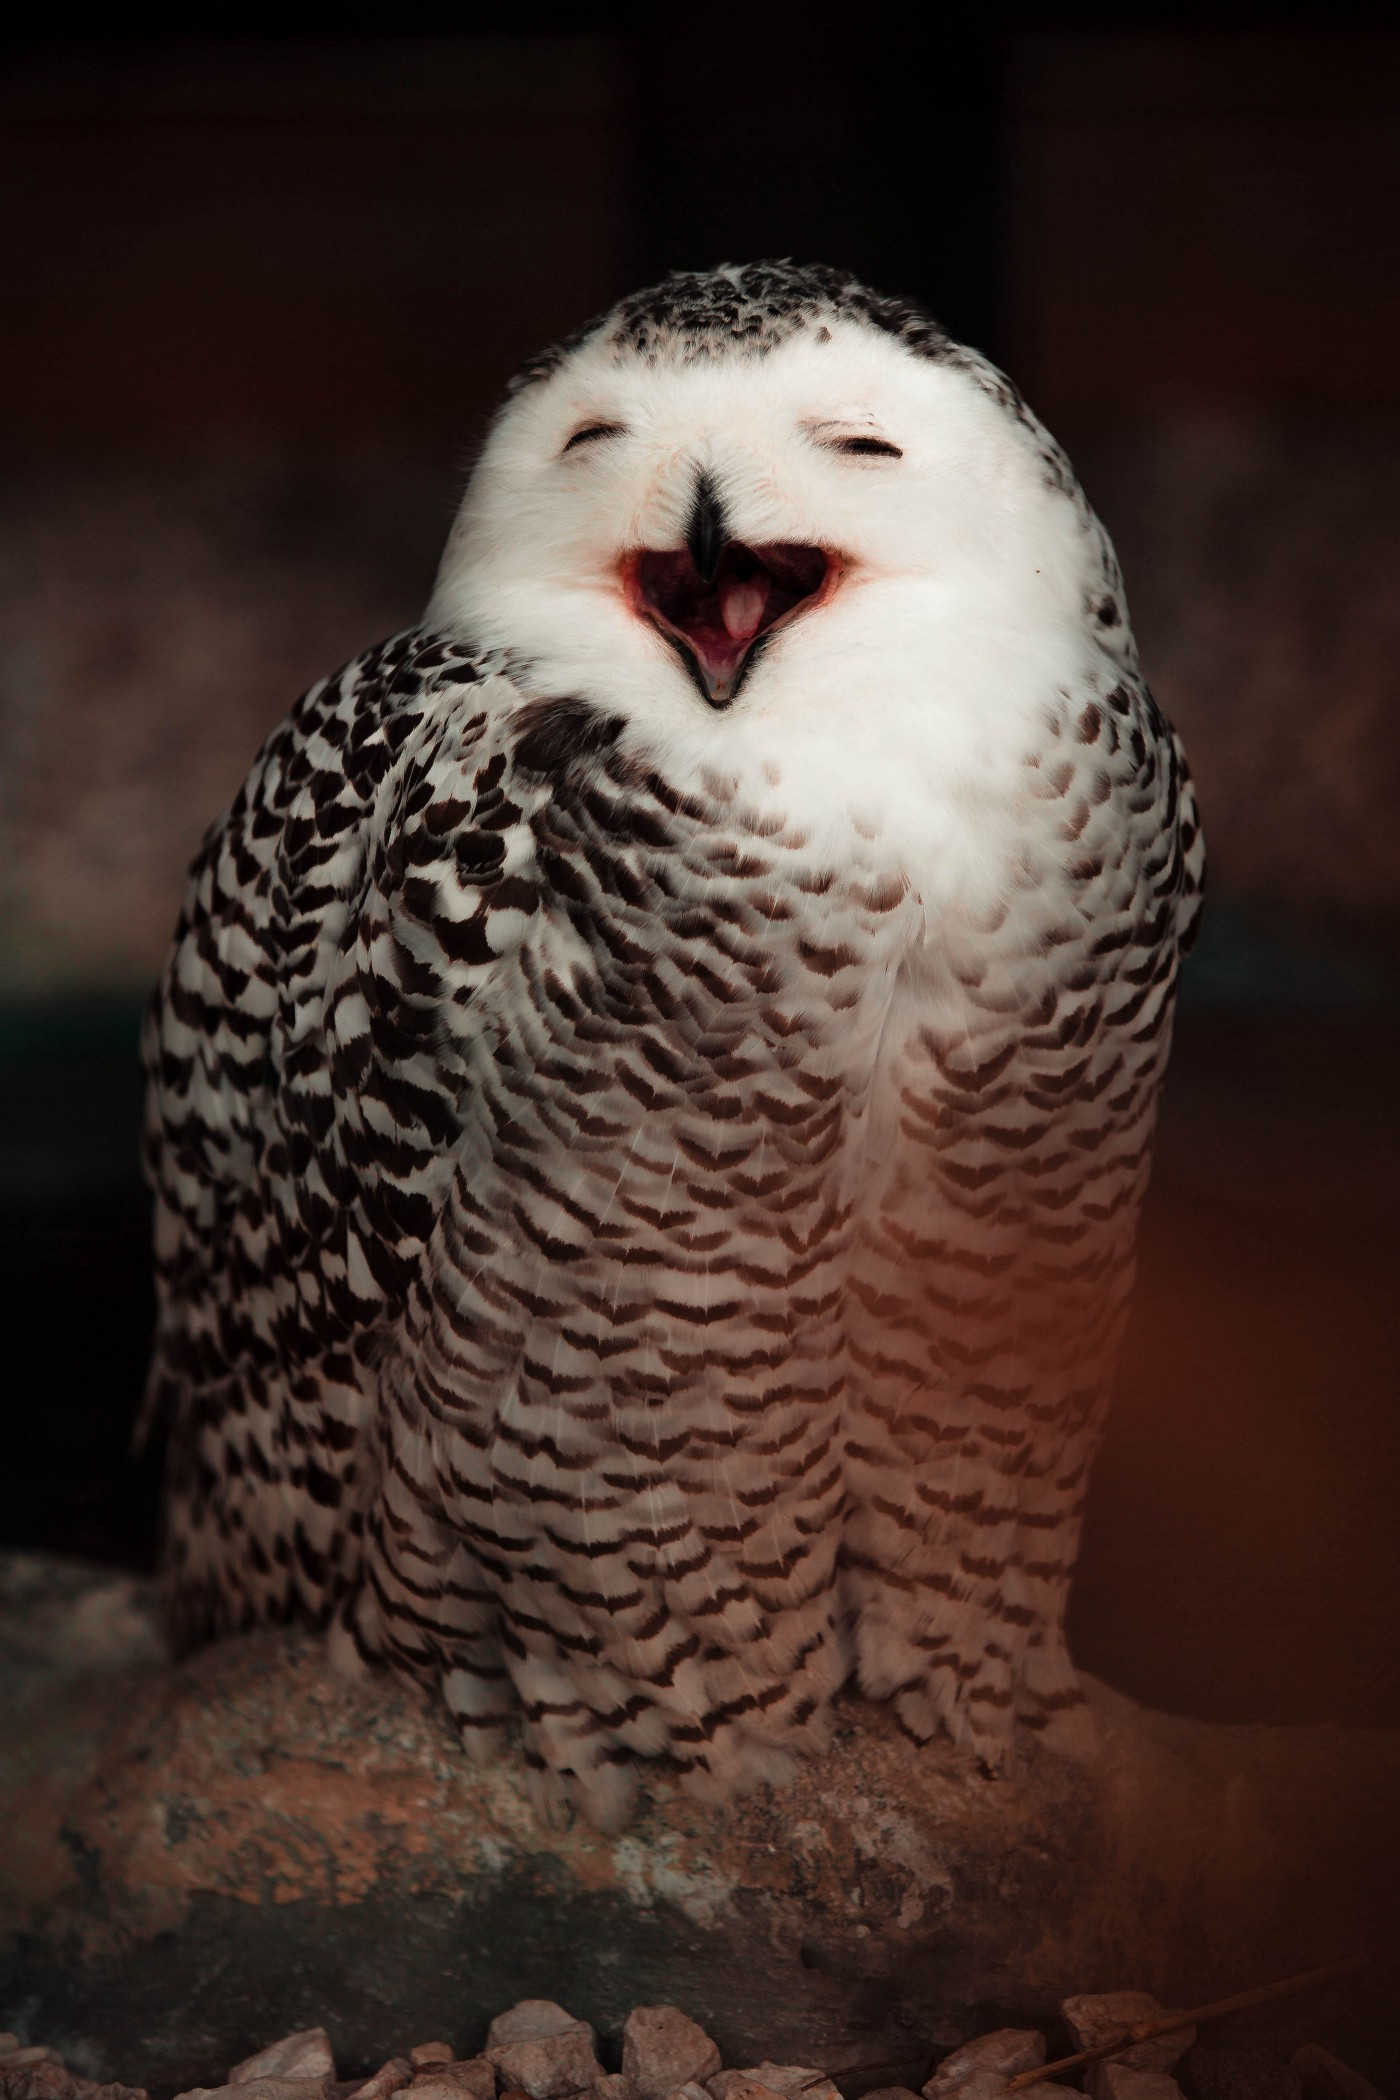 An owl smiling